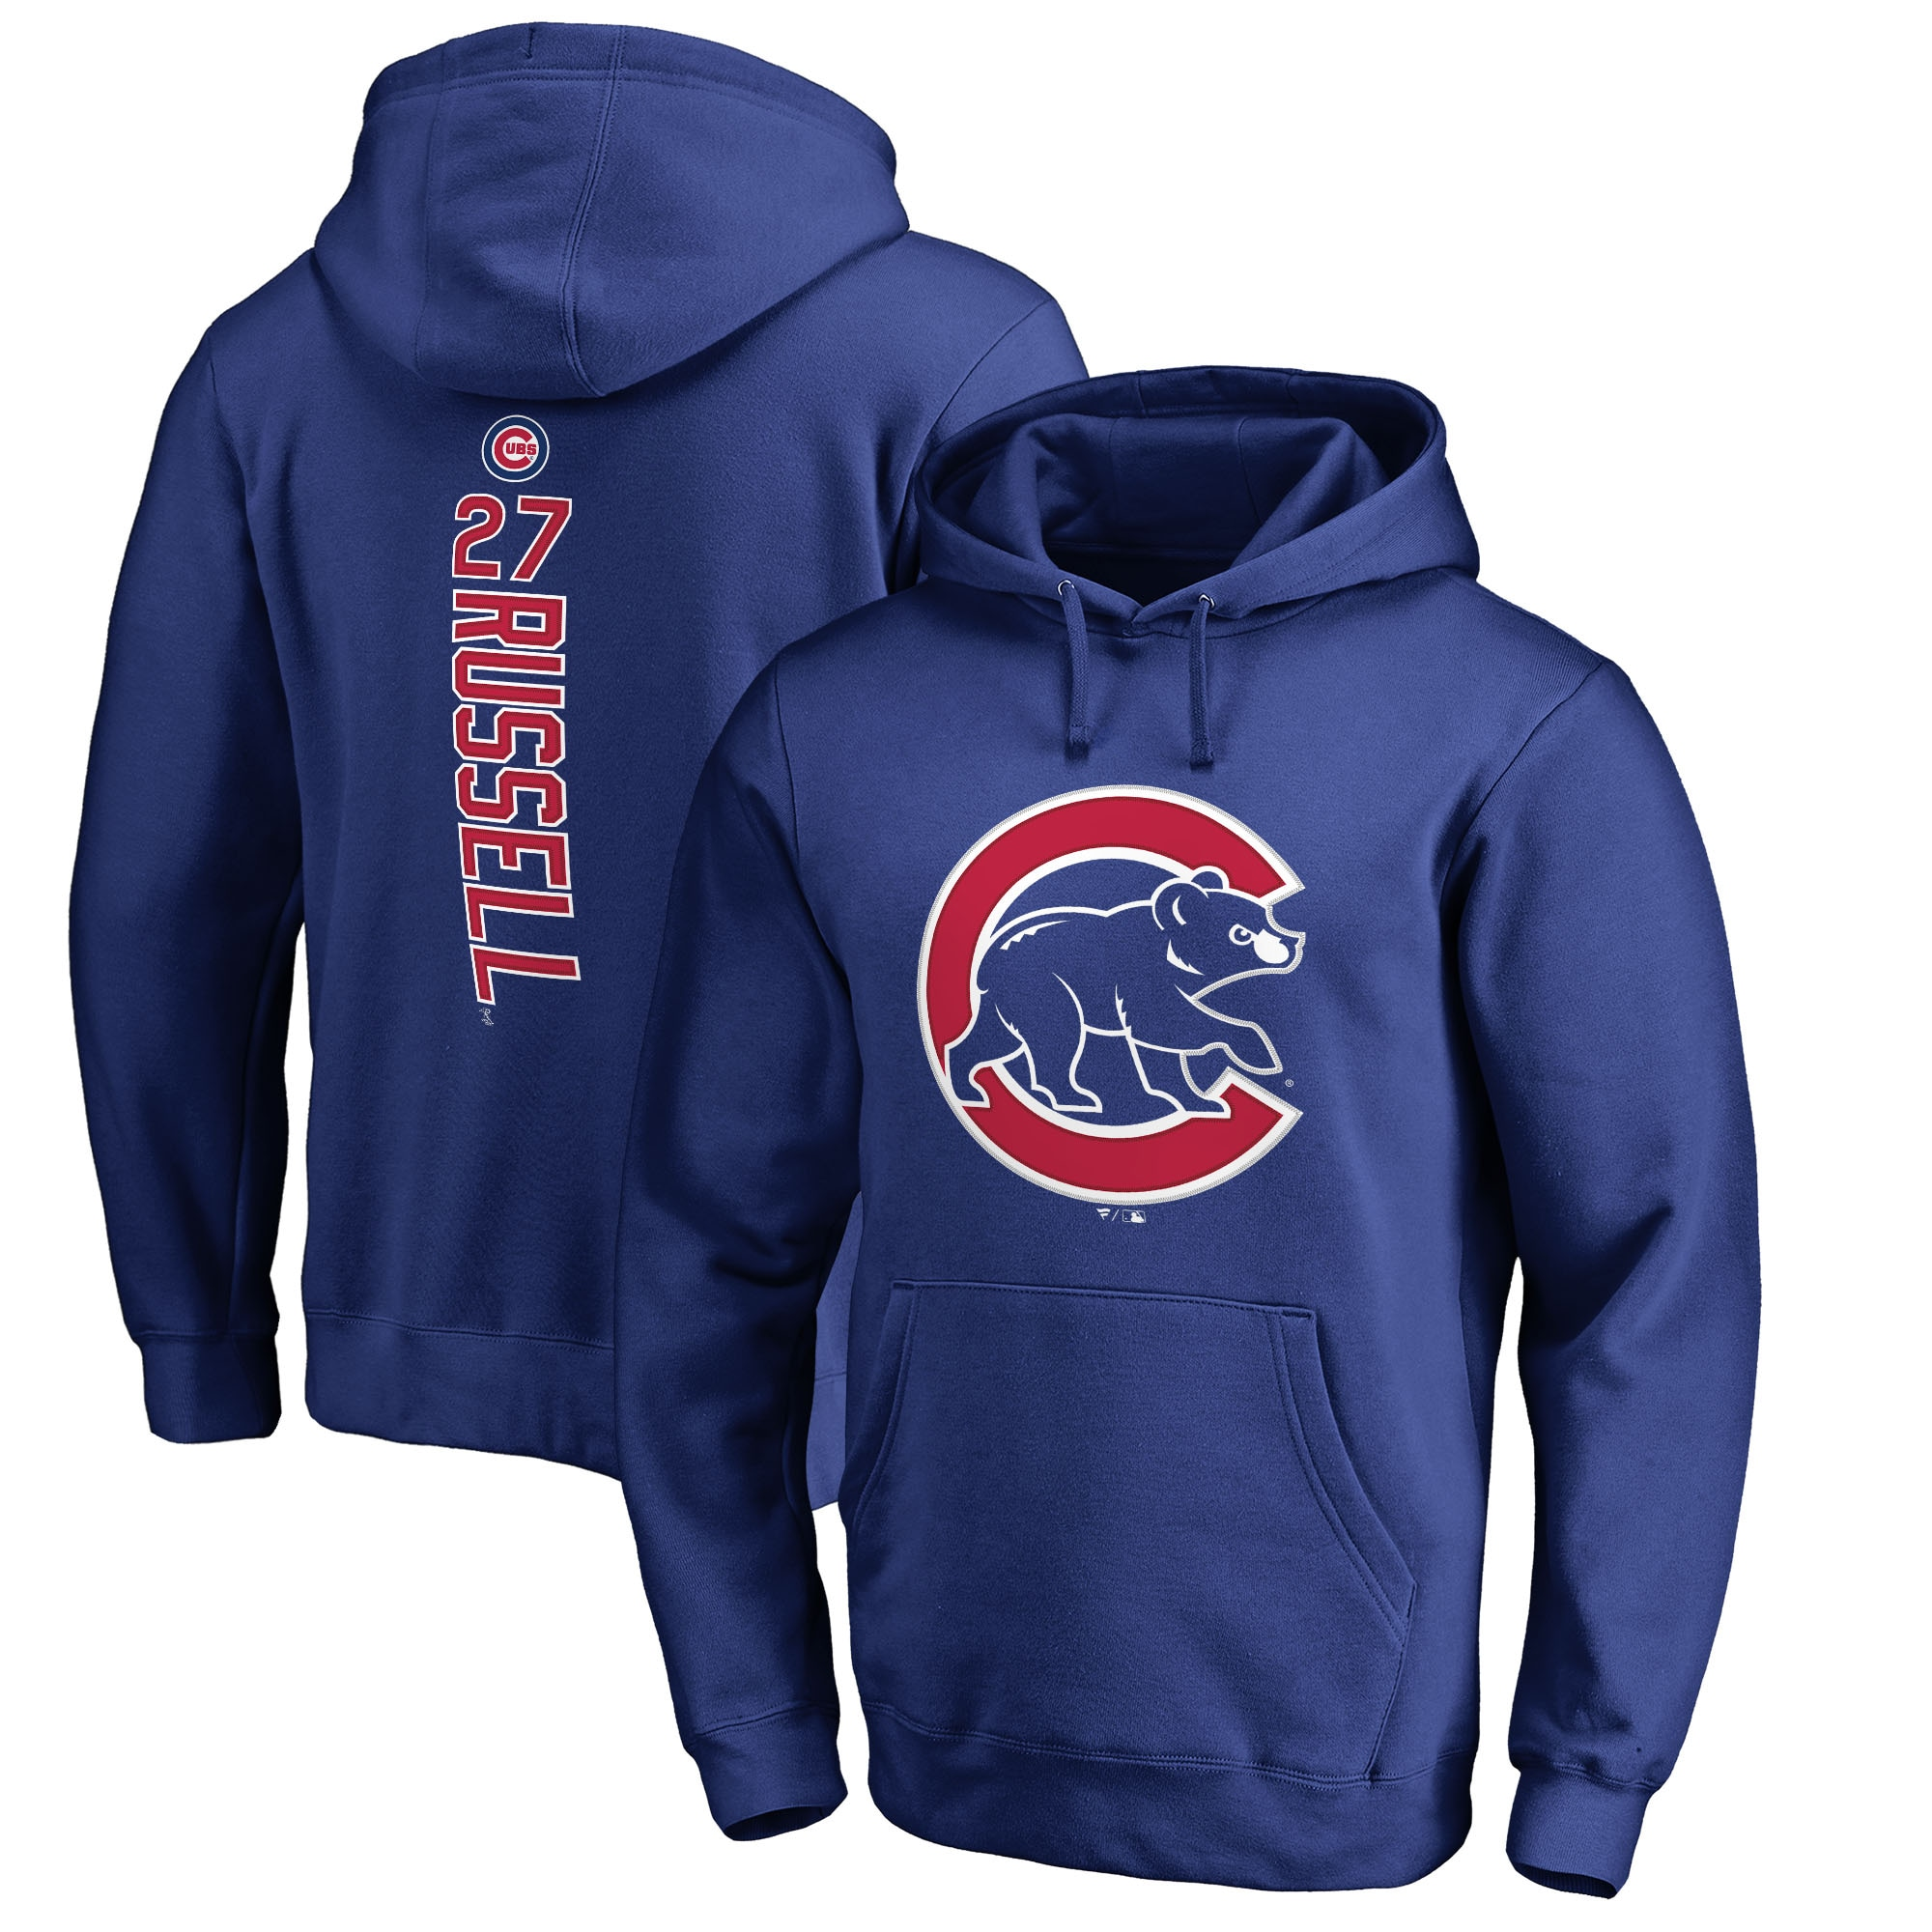 Addison Russell Chicago Cubs Fanatics Branded Backer Pullover Hoodie - Royal